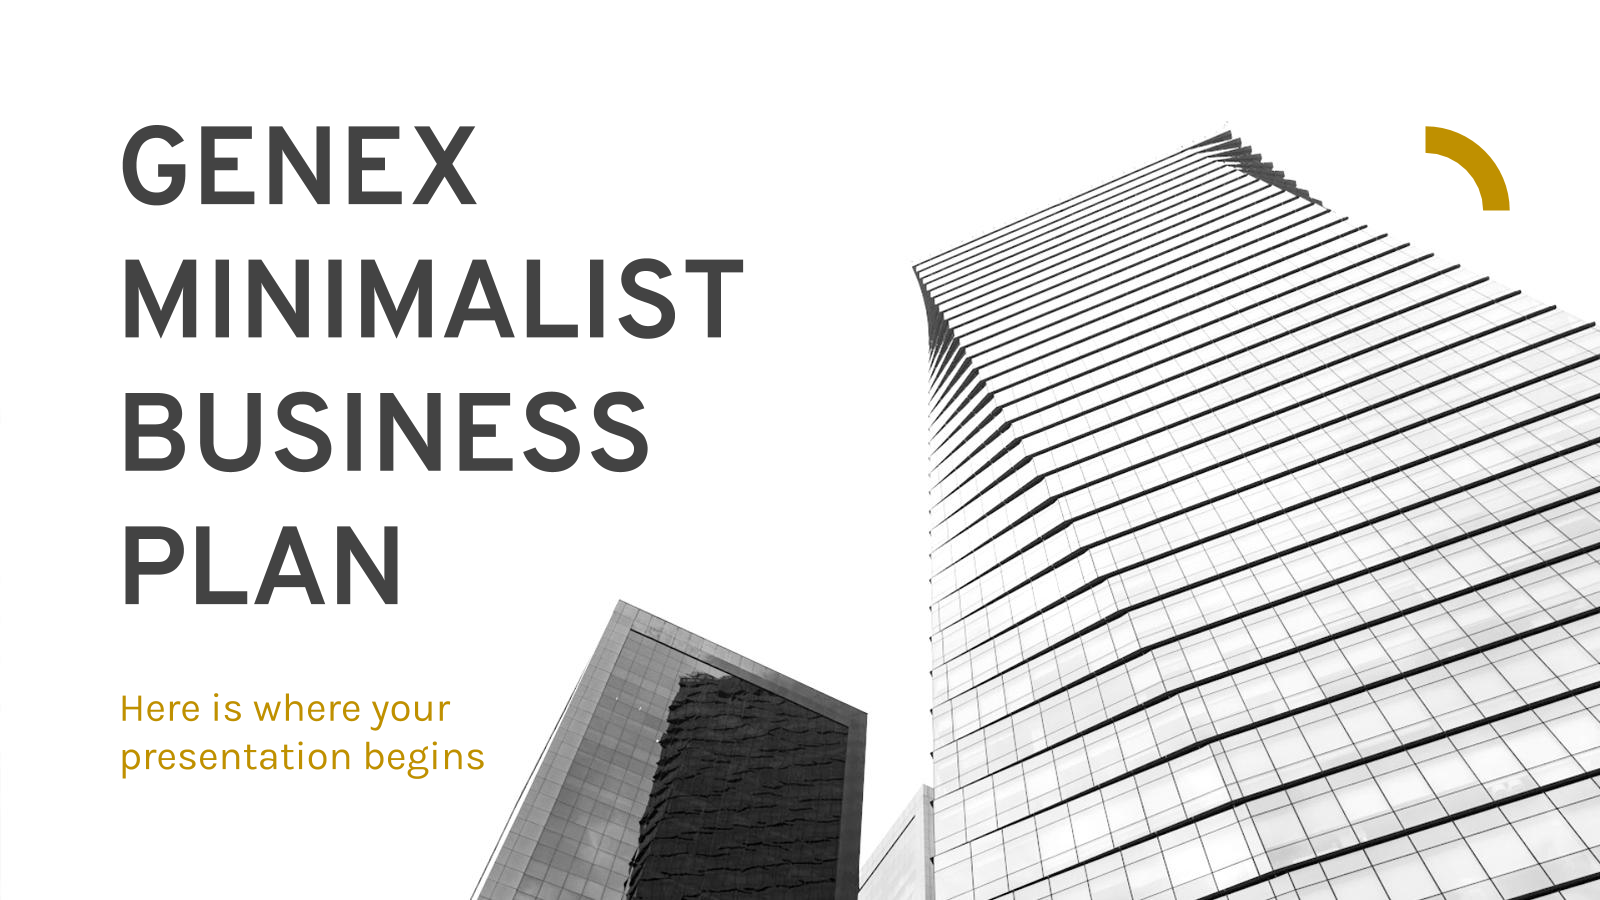 Genex Minimalist Business Plan presentation template